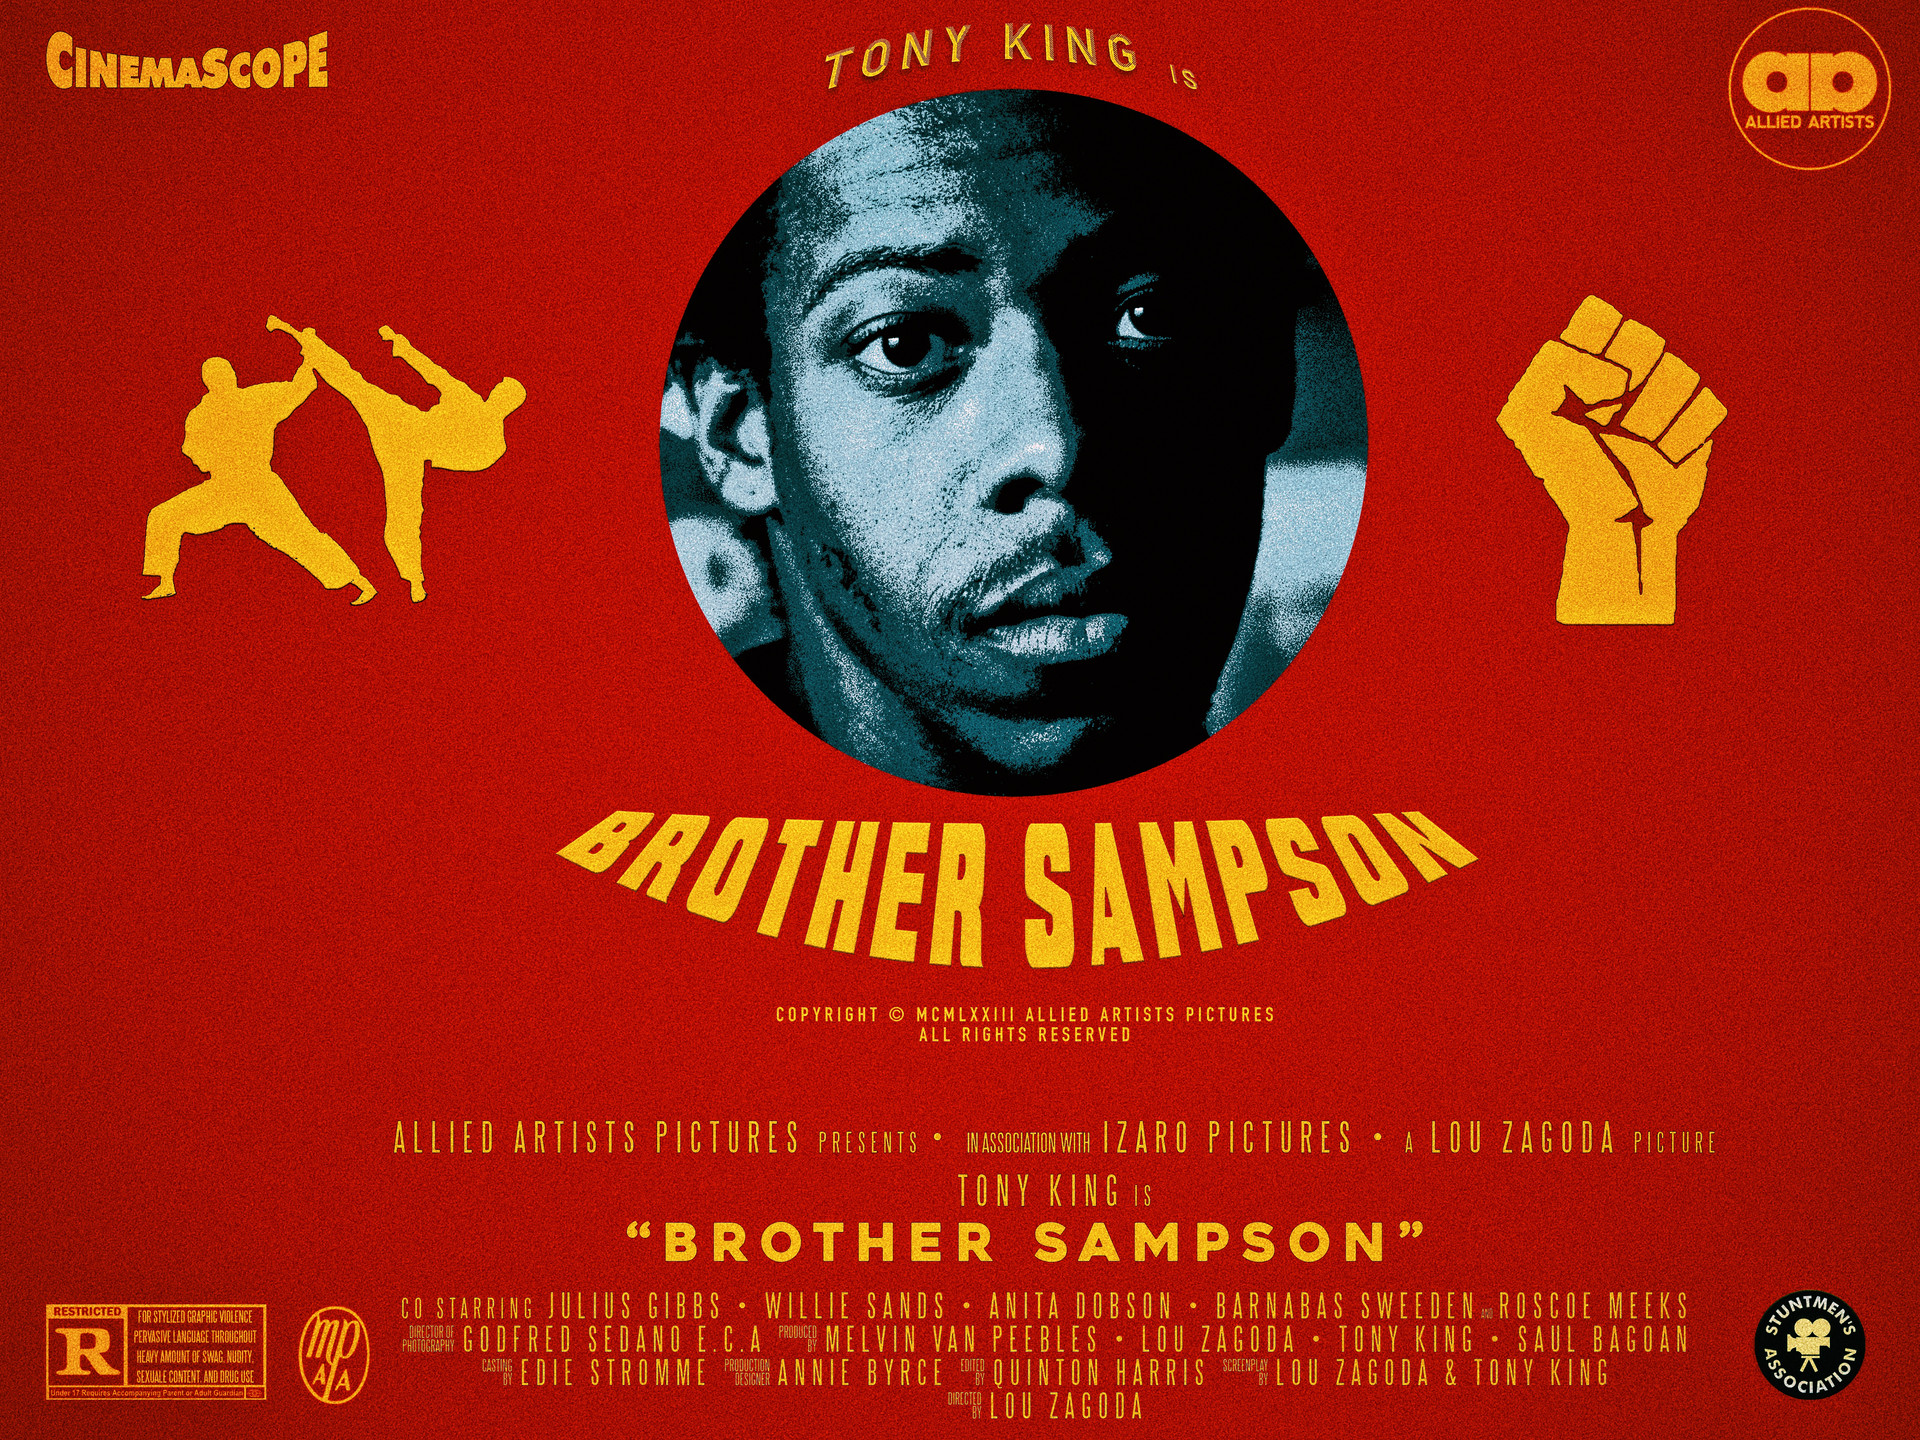 BROTHER SAMPSON